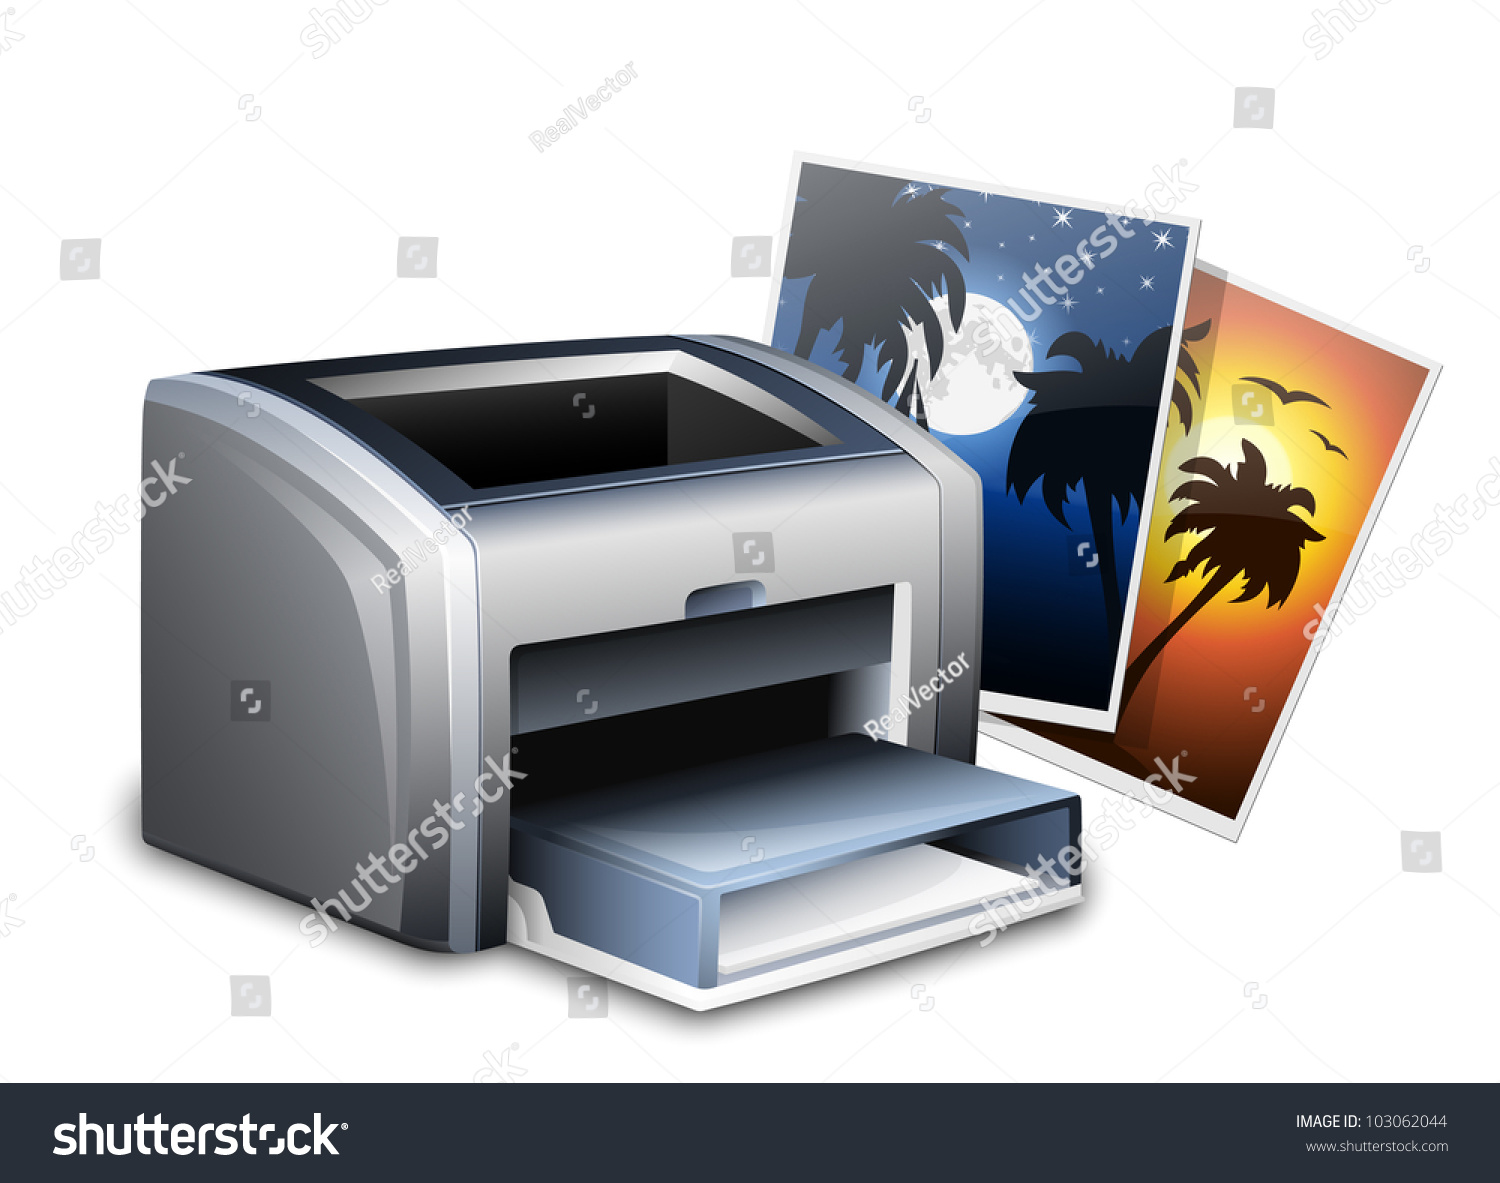 Color printers laser - Color Laser Printer And Photos Vector Illustration